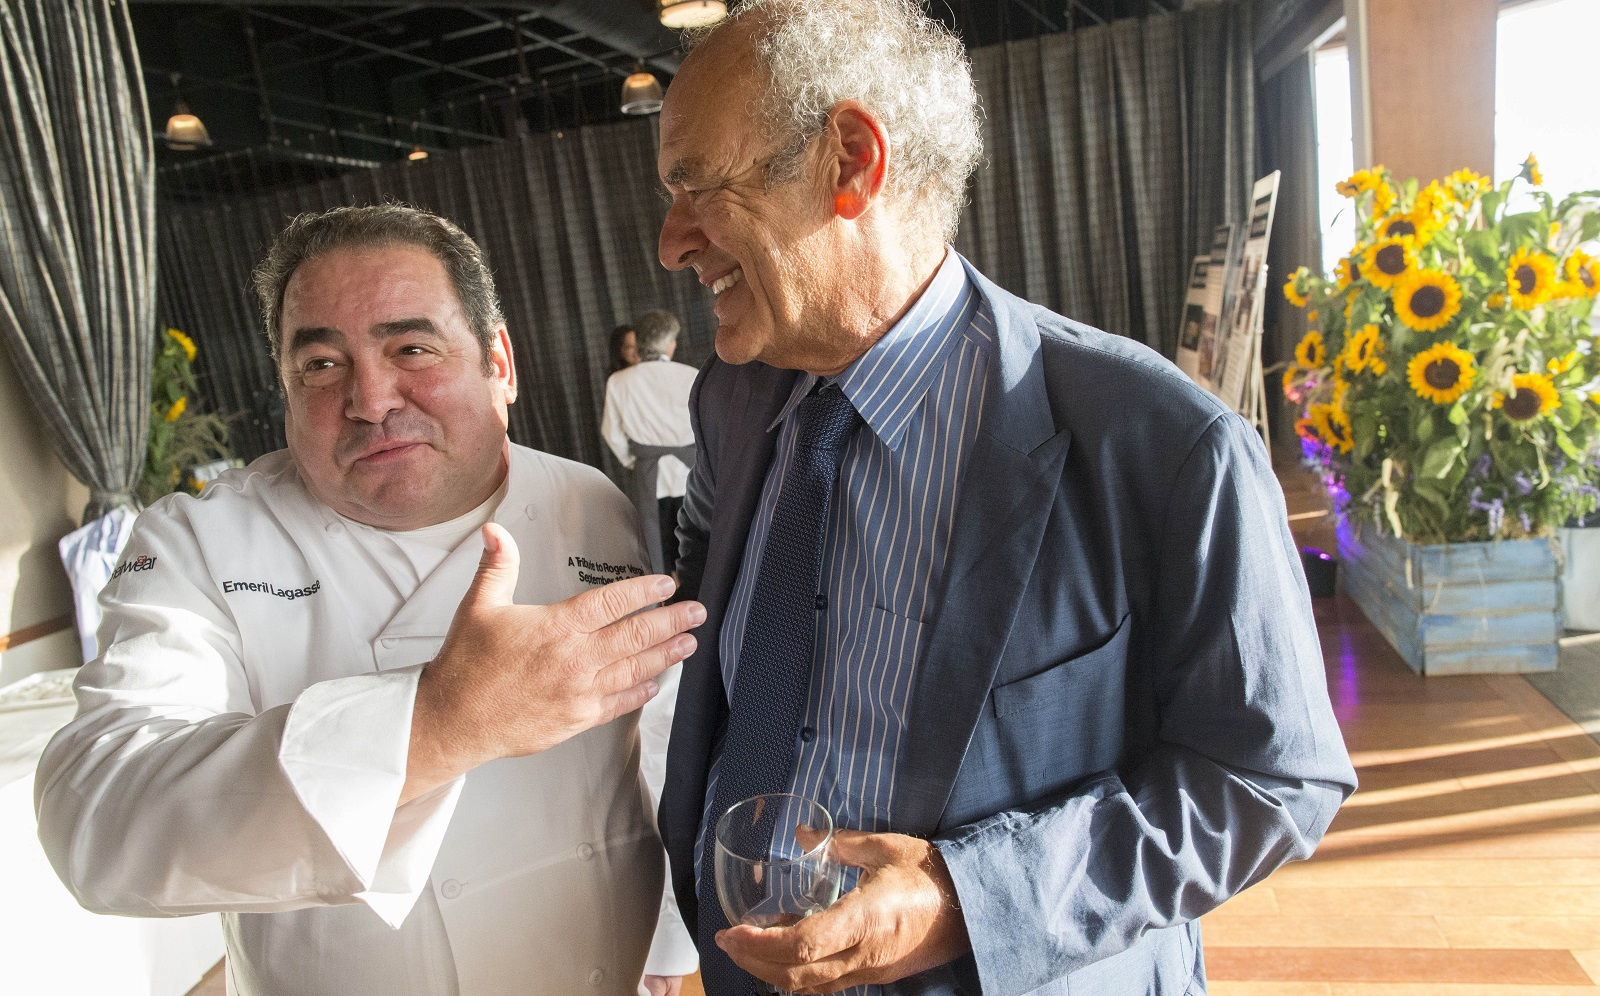 Legendary producer Shep Gordon, right, chats with celebrity chef Emeril Lagasse during a fundraiser. (Derek Gee/Buffalo News)